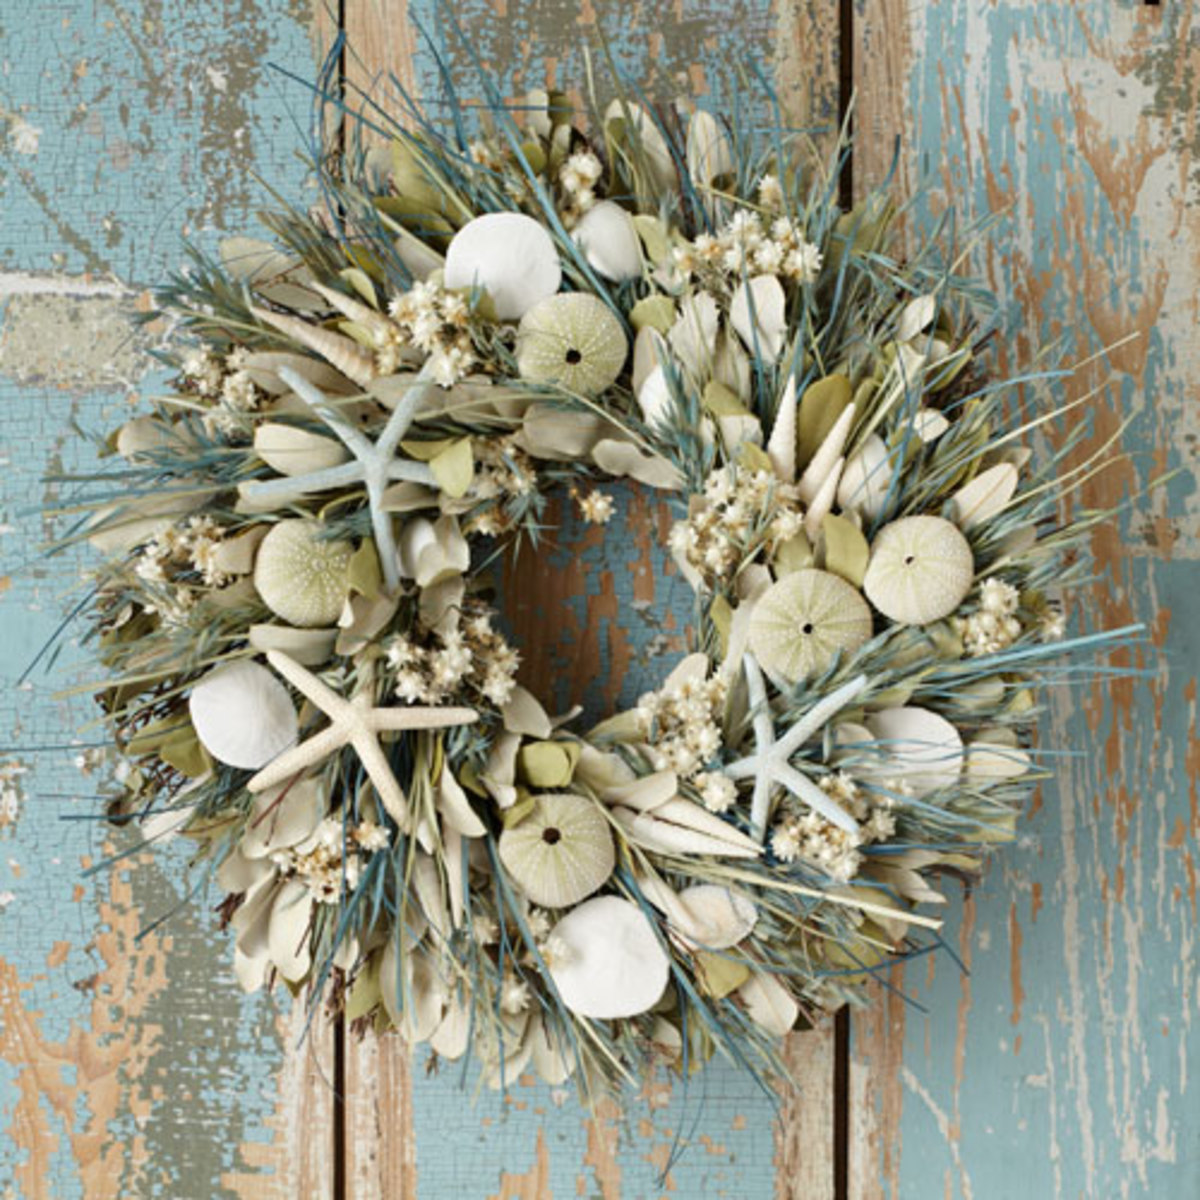 This is not a difficult wreath to make if you have the right supplies.